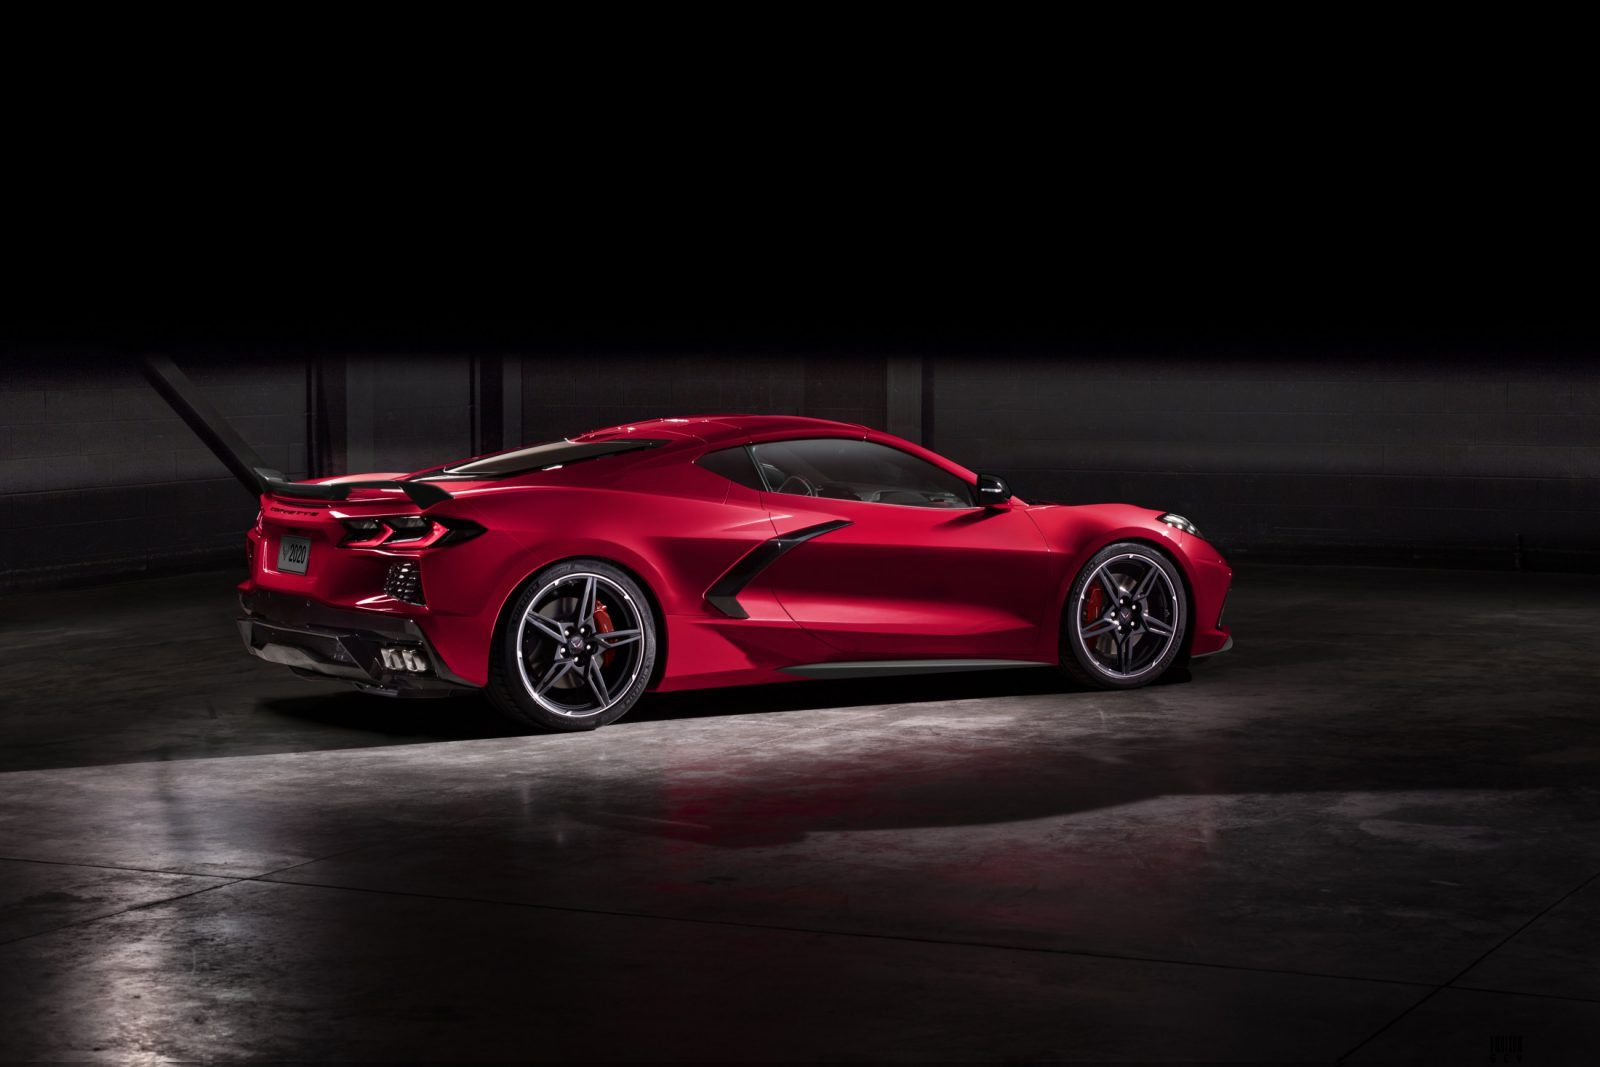 2020 Chevrolet Corvette C8 Convertible Top Closing And Opening 4k Video The La Auto Show Youtube In 2020 Chevrolet Corvette Convertible Top Chevrolet